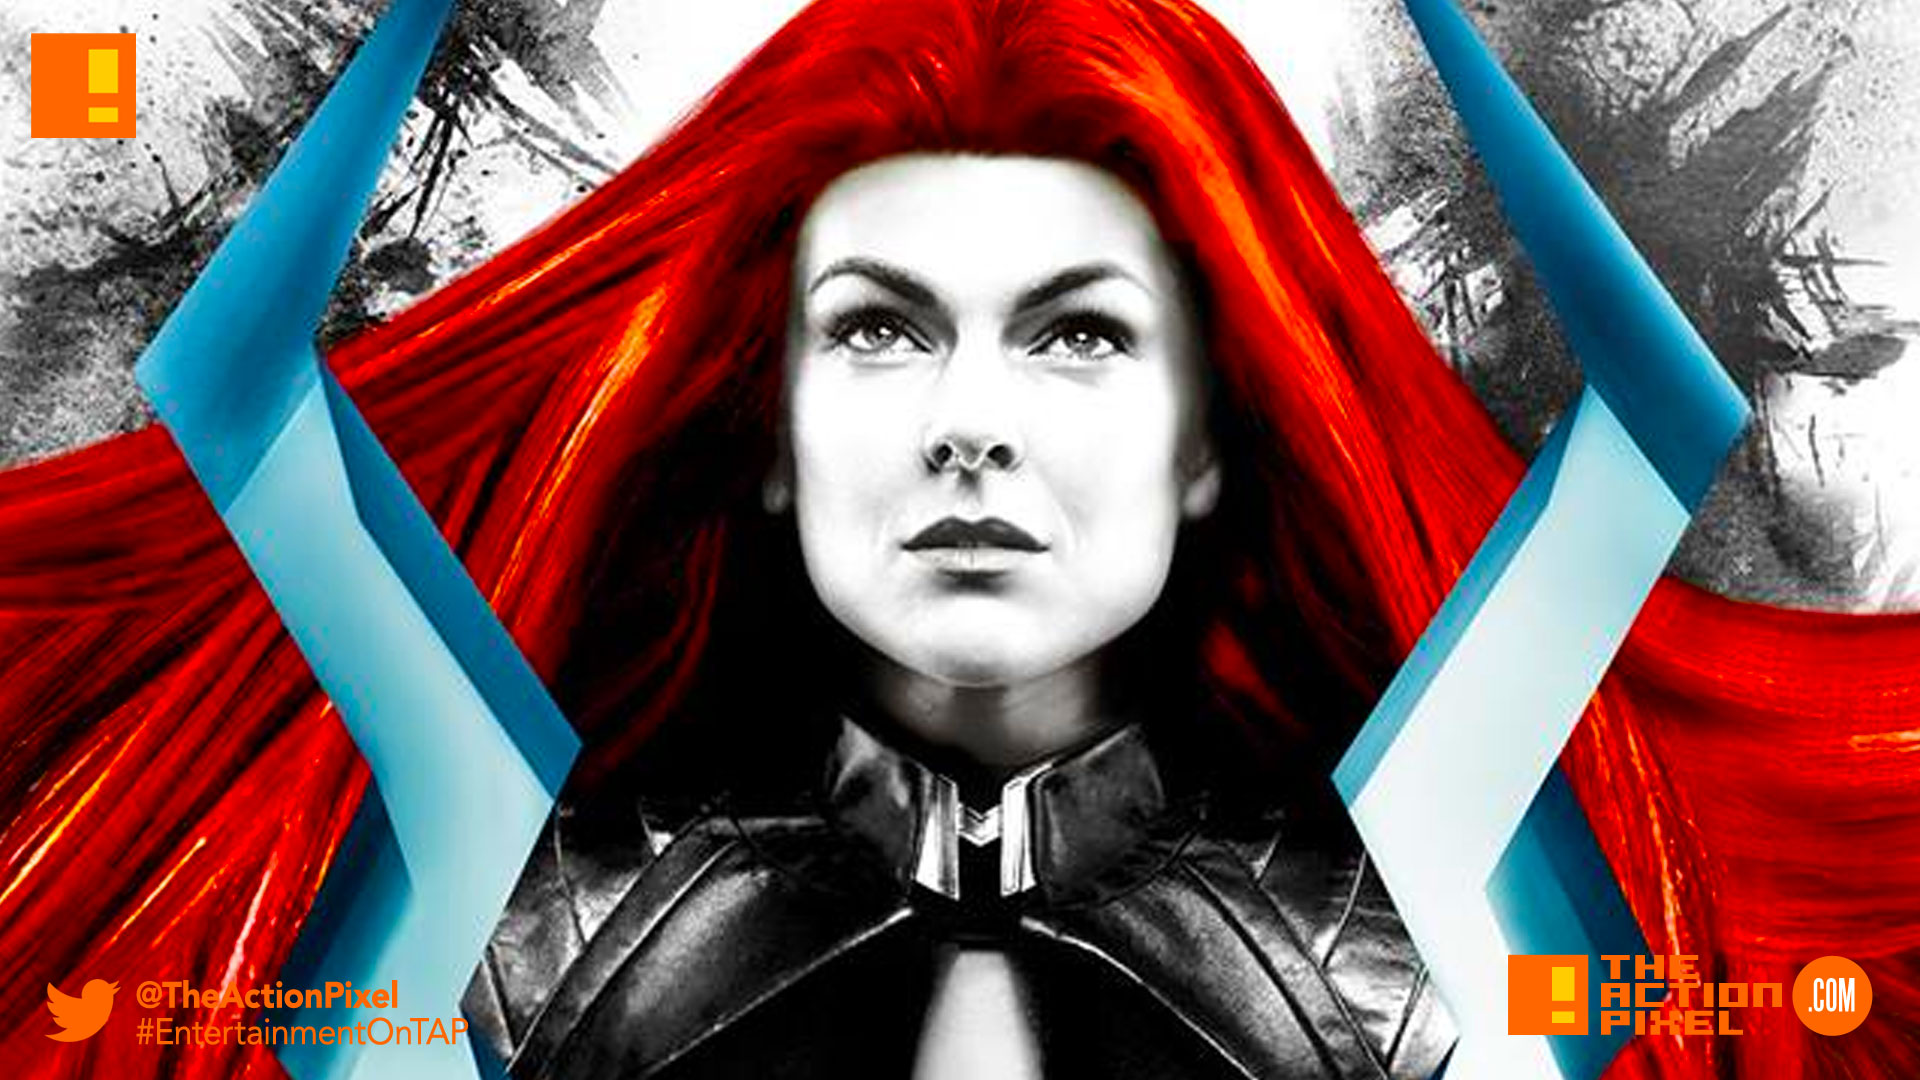 inhumans, Black Bolt, Medusa, Maximus,poster, marvel, imax, the inhumans, marvel's inhumans,the action pixel, entertainment on tap, poster,